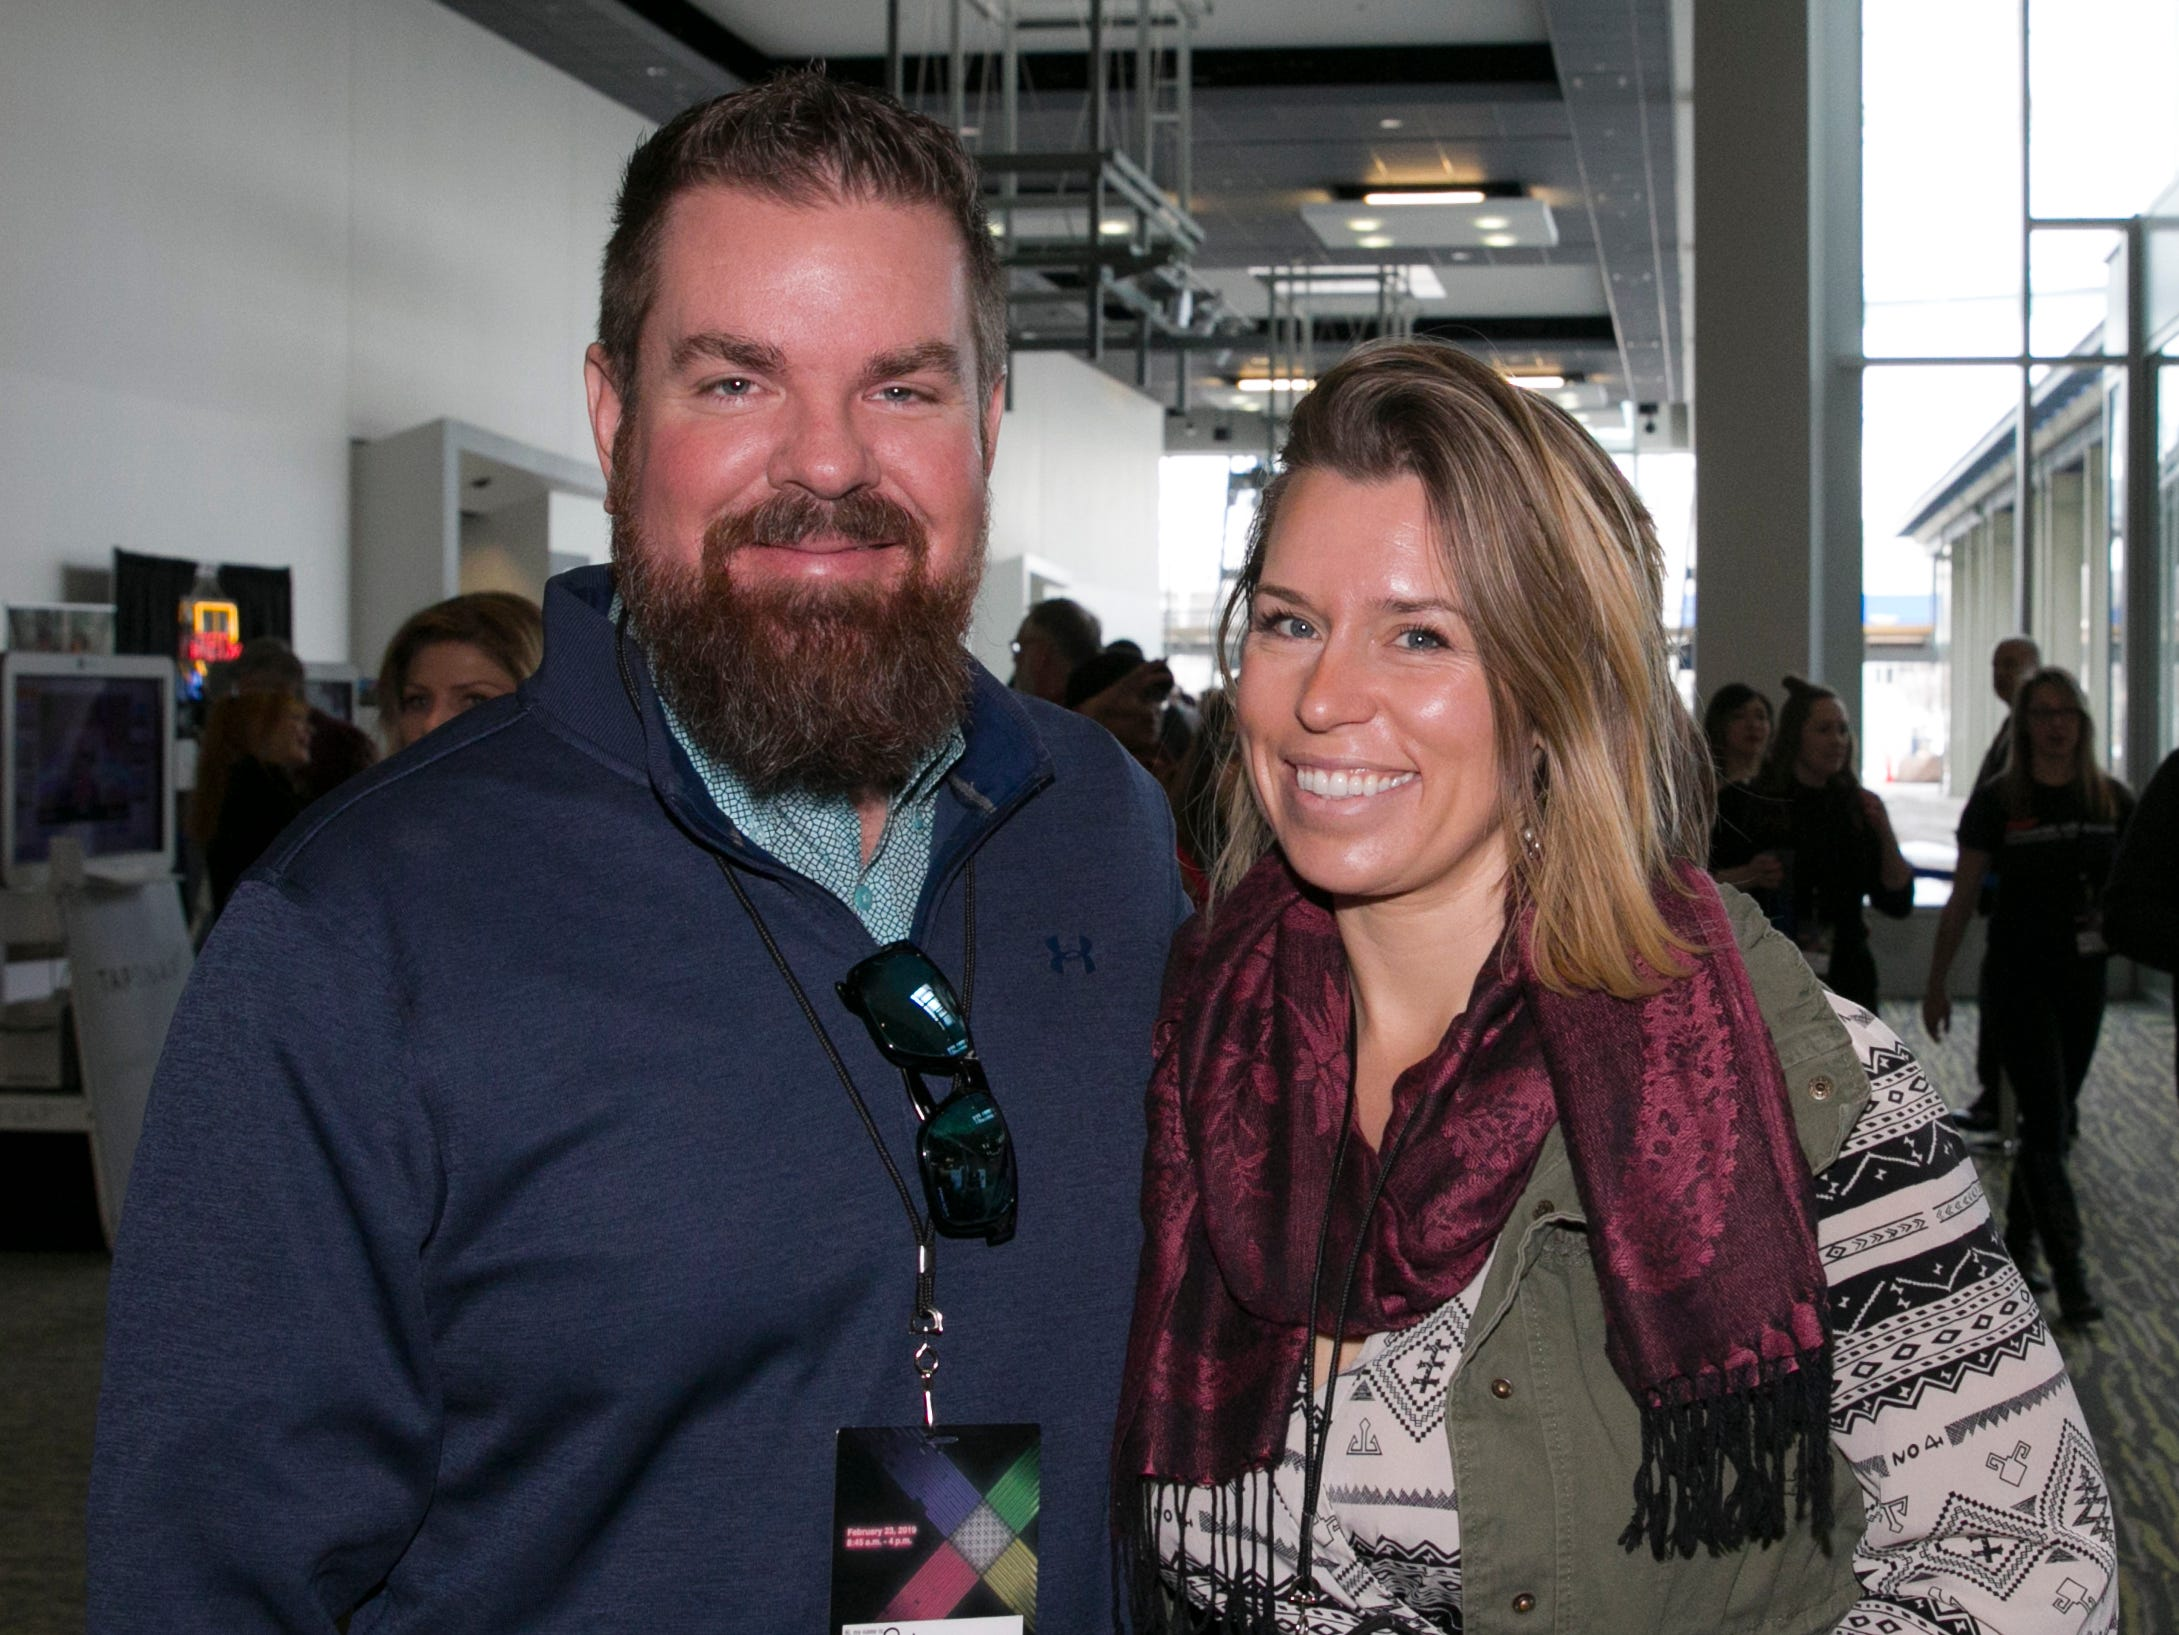 Seth Alexander and Helena Class during TEDx University of Nevada 2019 at the Reno-Sparks Convention Center on Saturday, Feb. 23, 2019.